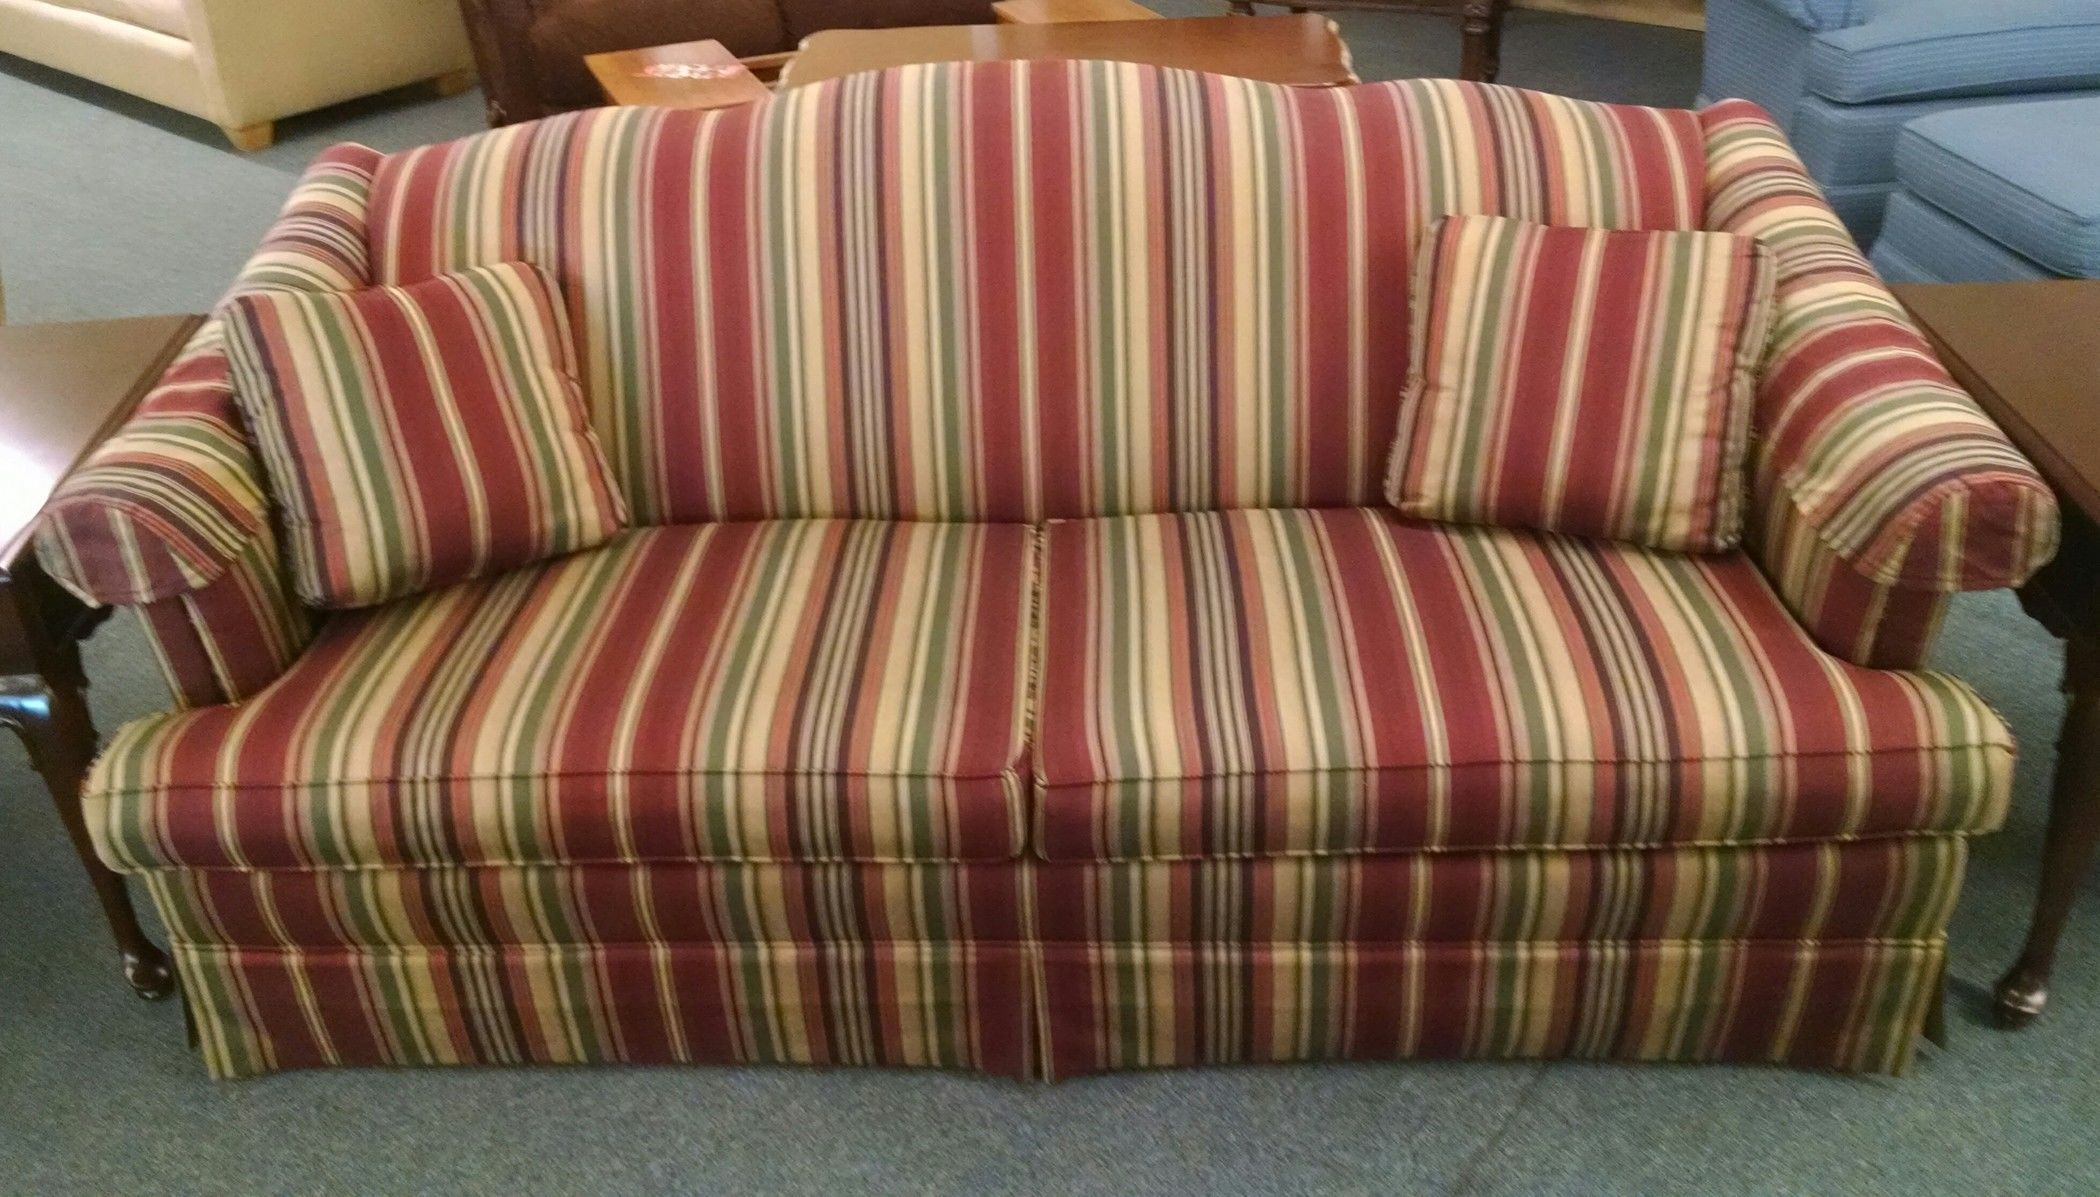 Striped Sofa Brokeasshomecom : large20151019132905 from brokeasshome.com size 2100 x 1197 jpeg 357kB